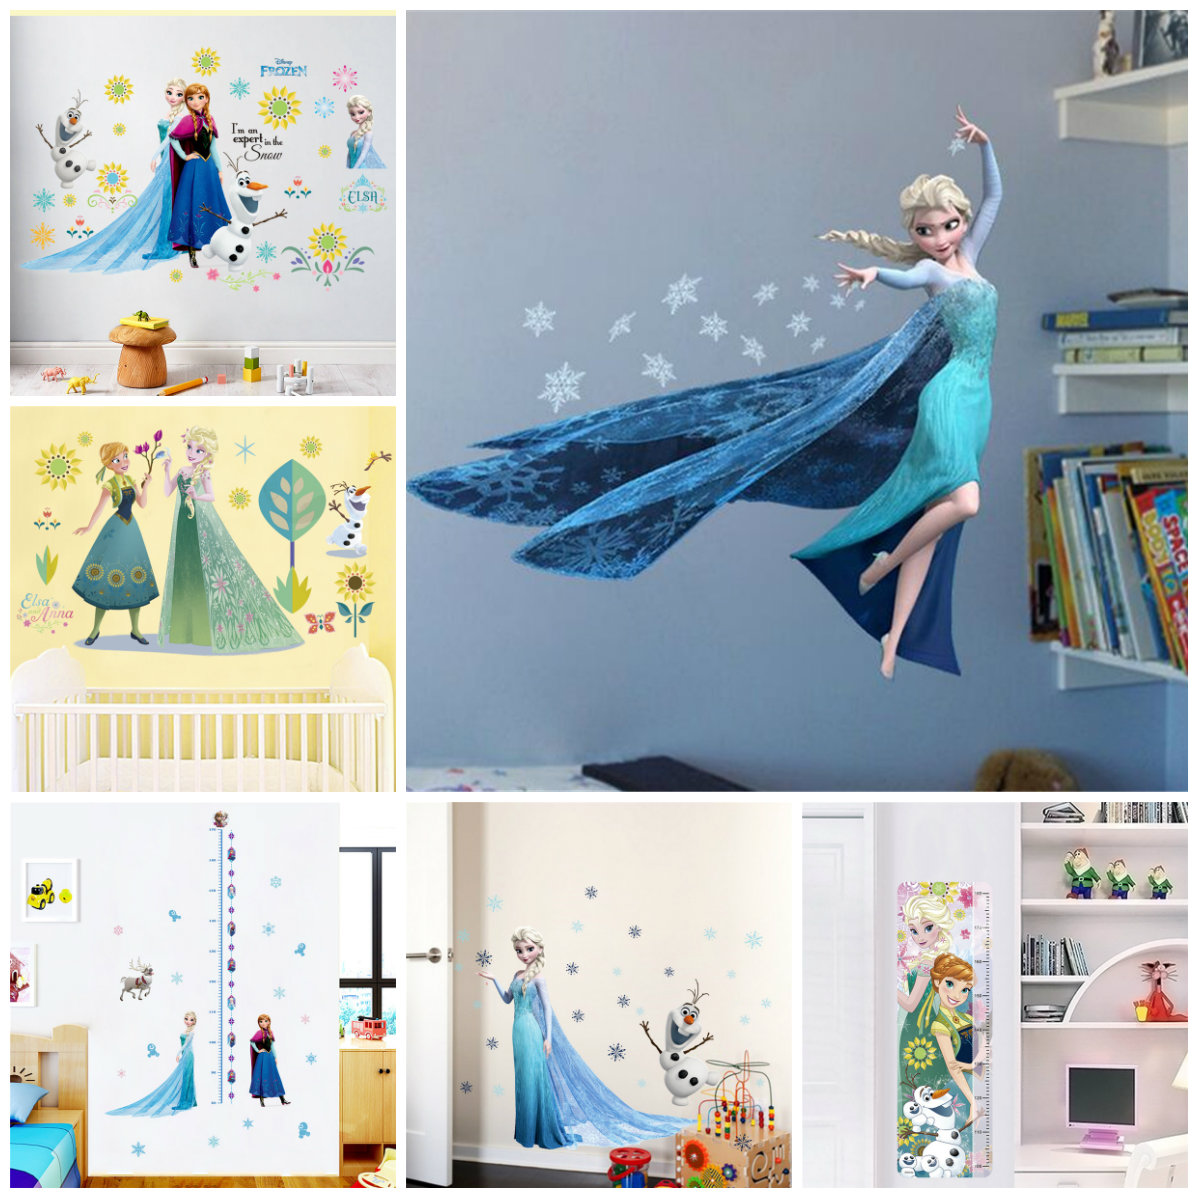 Cartoon Diy Elsa Anna Frozen Princess Wall Stickers For Girls Room Home Decoration Anime Mural Art Movie Poster Kids Wall Decal|Wall Stickers|   - AliExpress